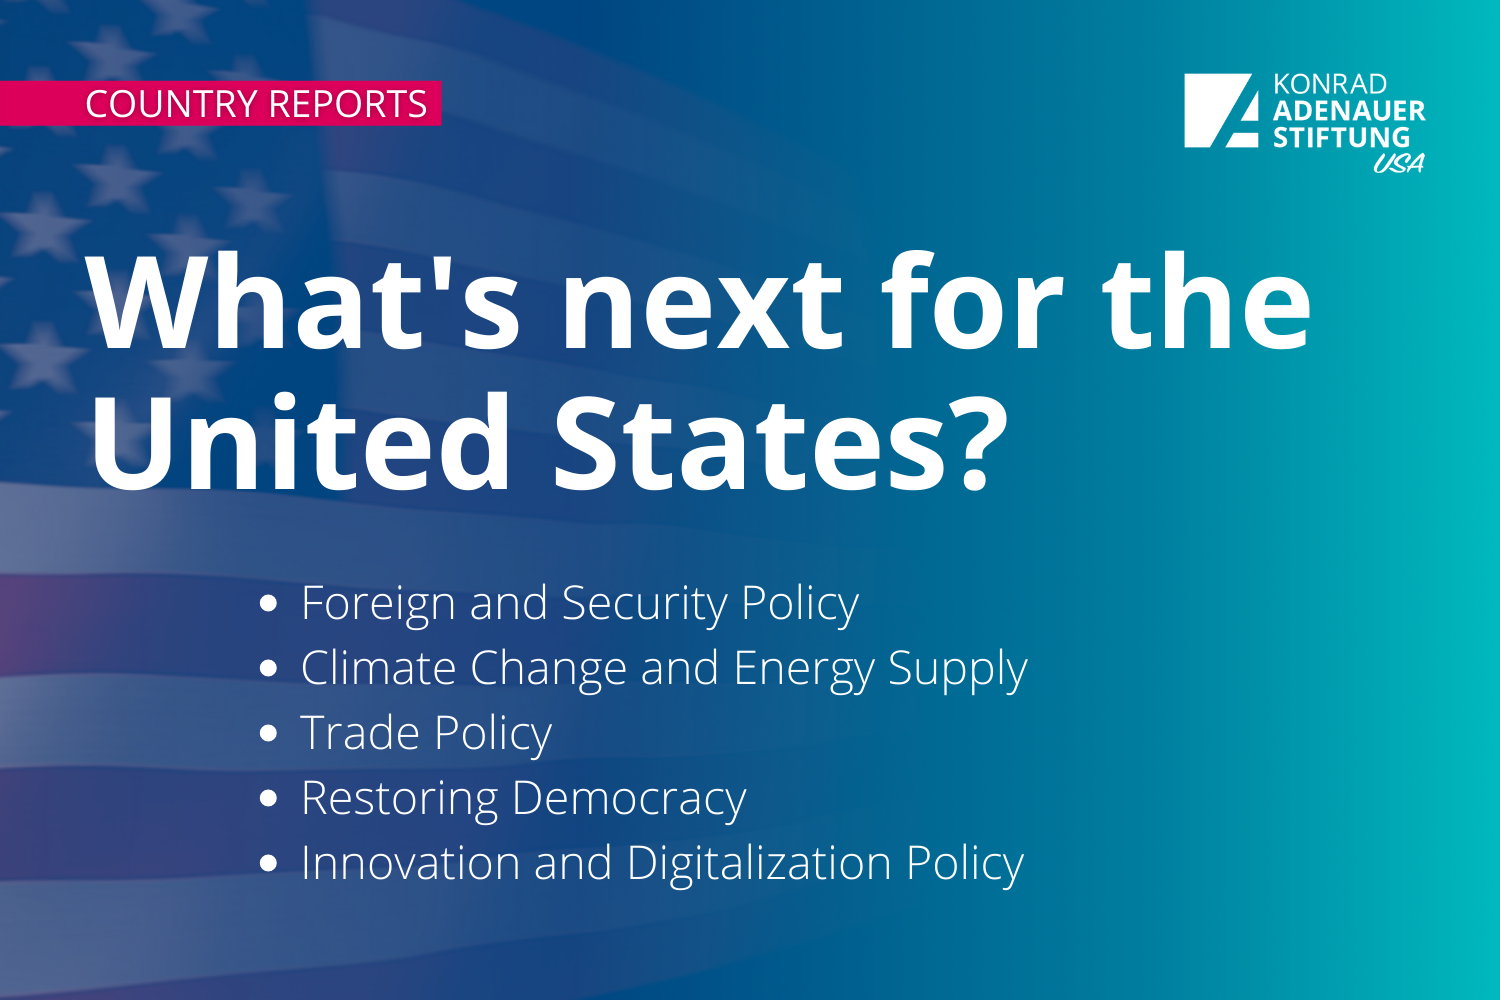 Country Reports: What's next for the United States?